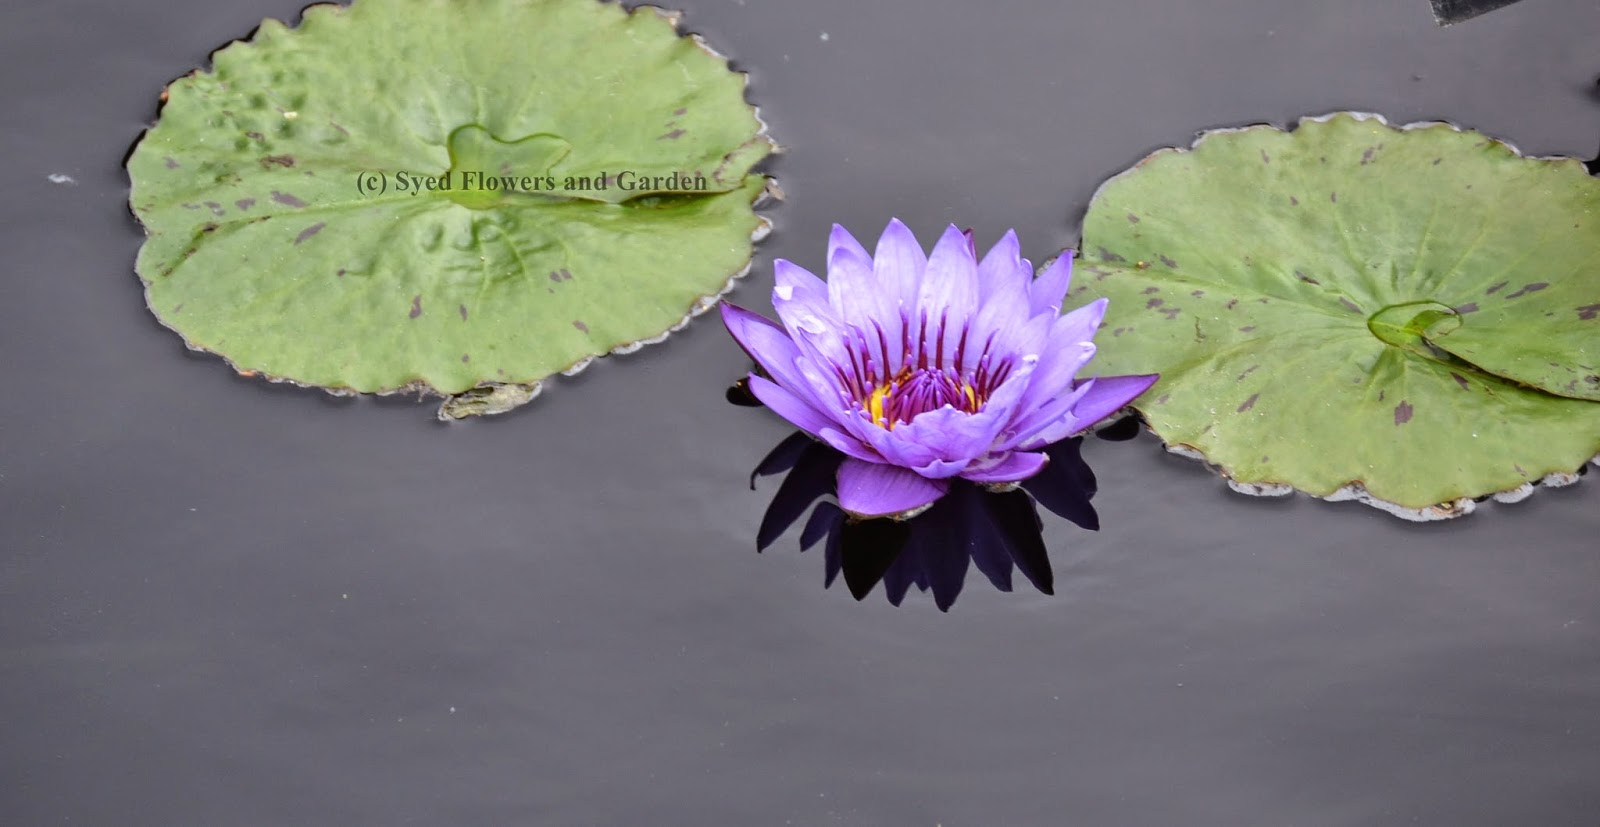 How to grow water lilies or aquatic plants nymphaeaceae flower water lilies and water lotus are two different plants lots of mine friends confused with each other asking me what is different between those plants izmirmasajfo